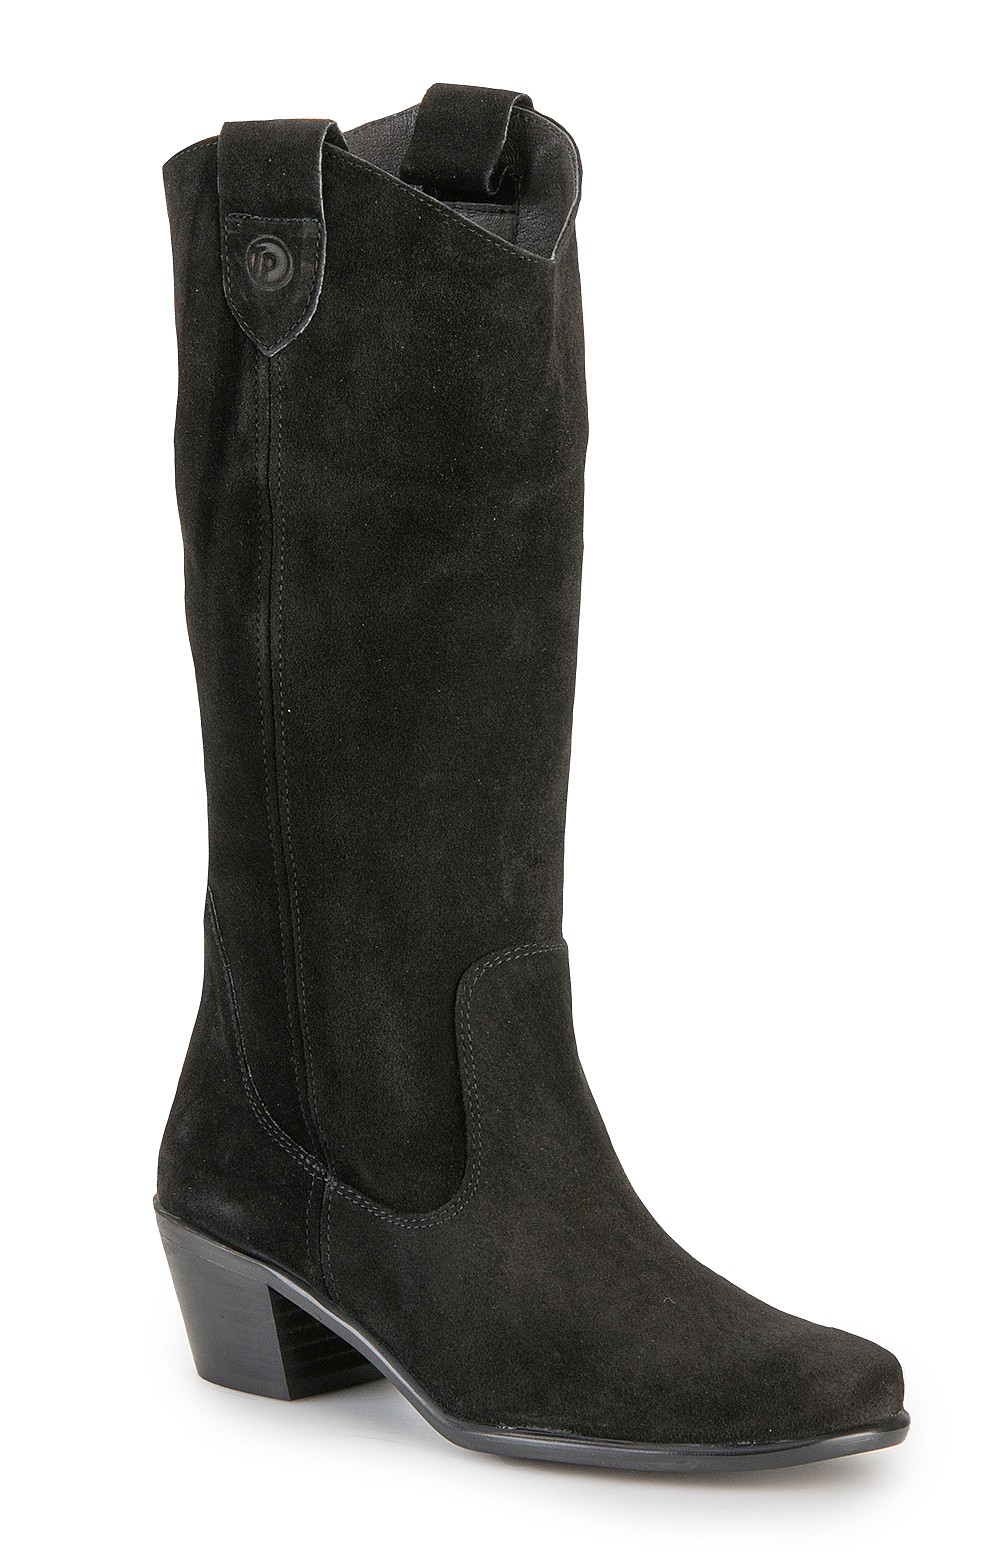 6f4c3077005 Suede Cowboy Boot - House of Bruar